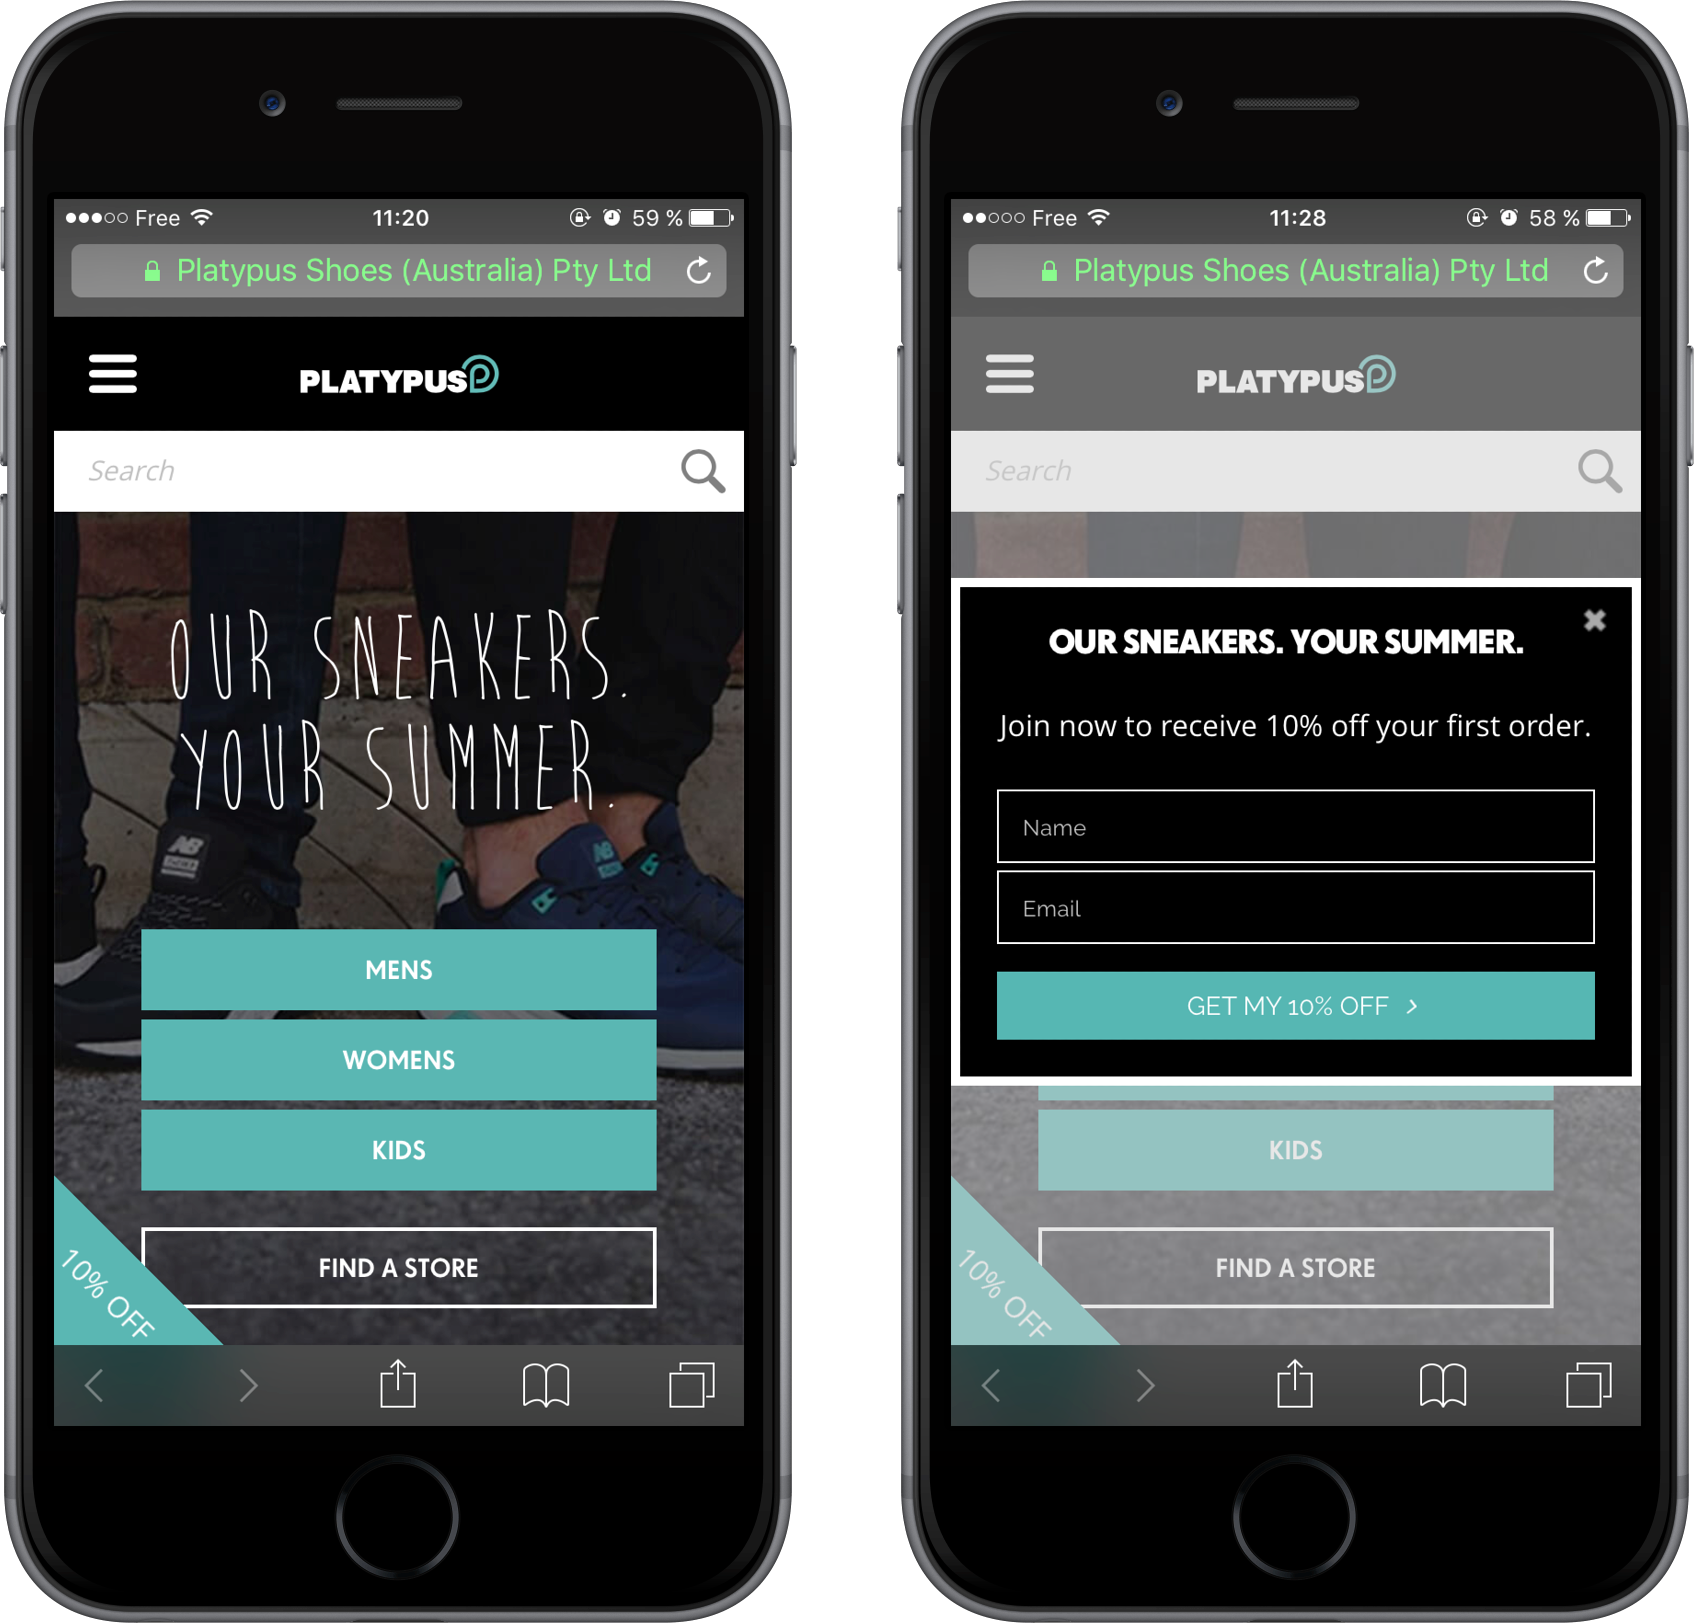 A mobile-friendly lead form on Platypus shoes' website